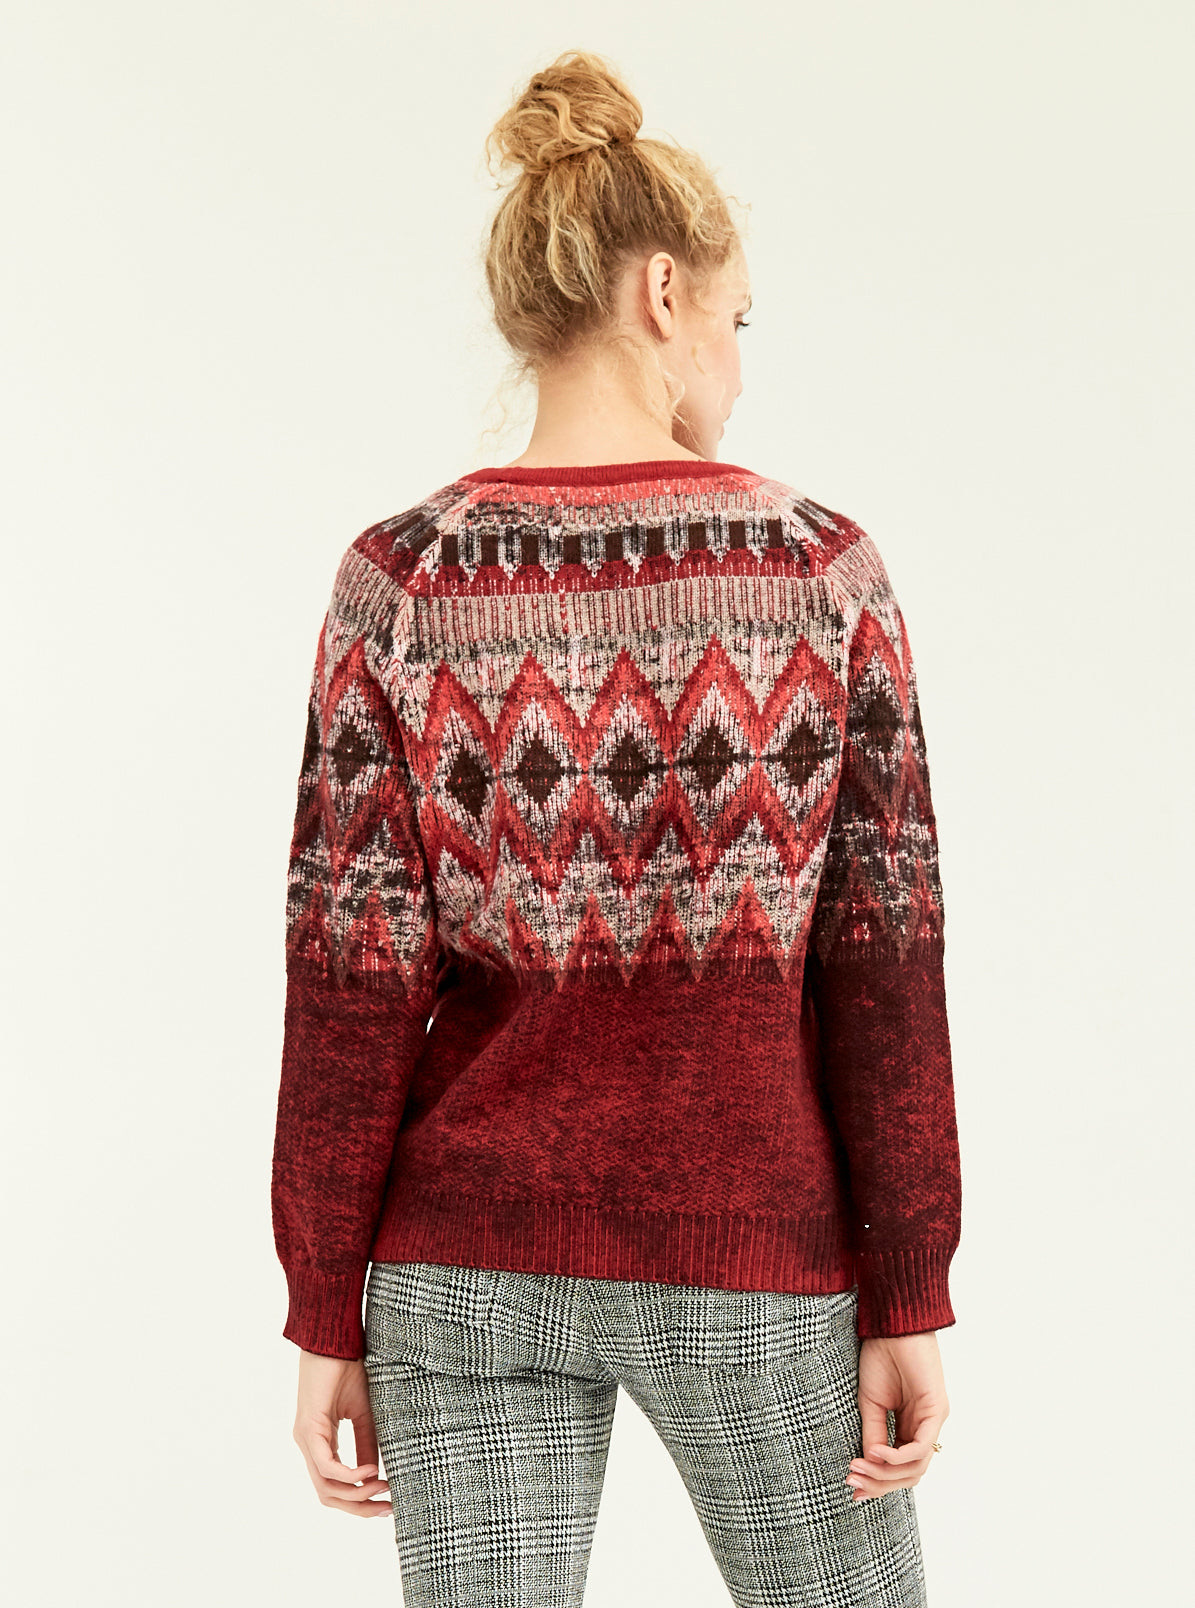 Vintage Fair Isle Sweater - Boundless North Online Store